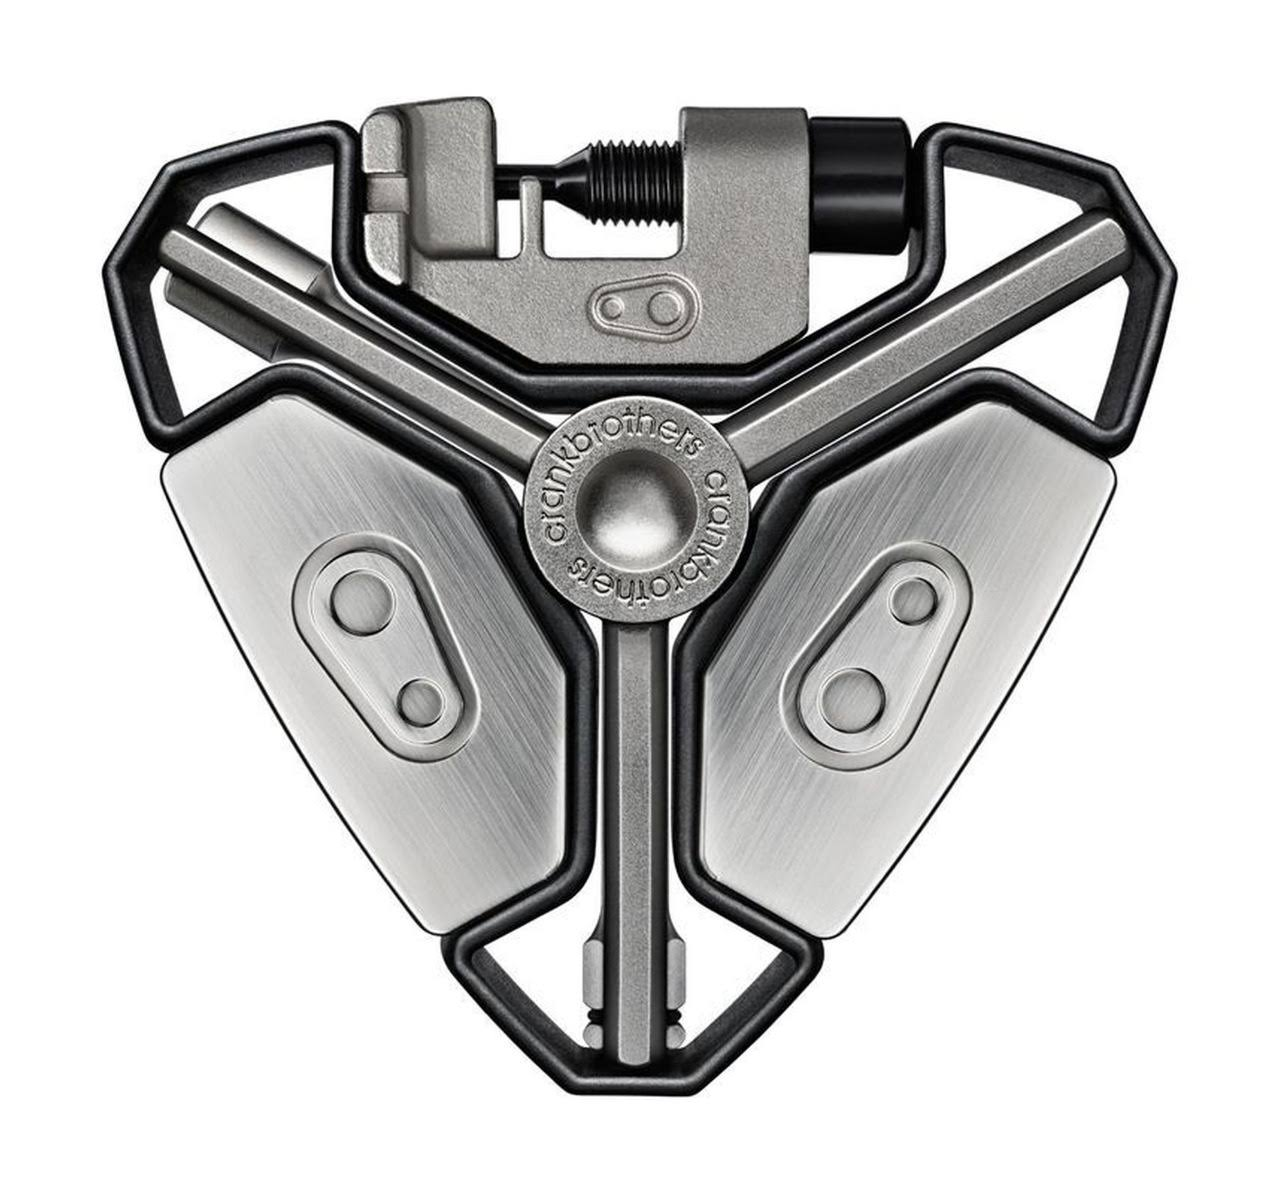 Crank Brothers Y15 Bicycle Multi-Tool